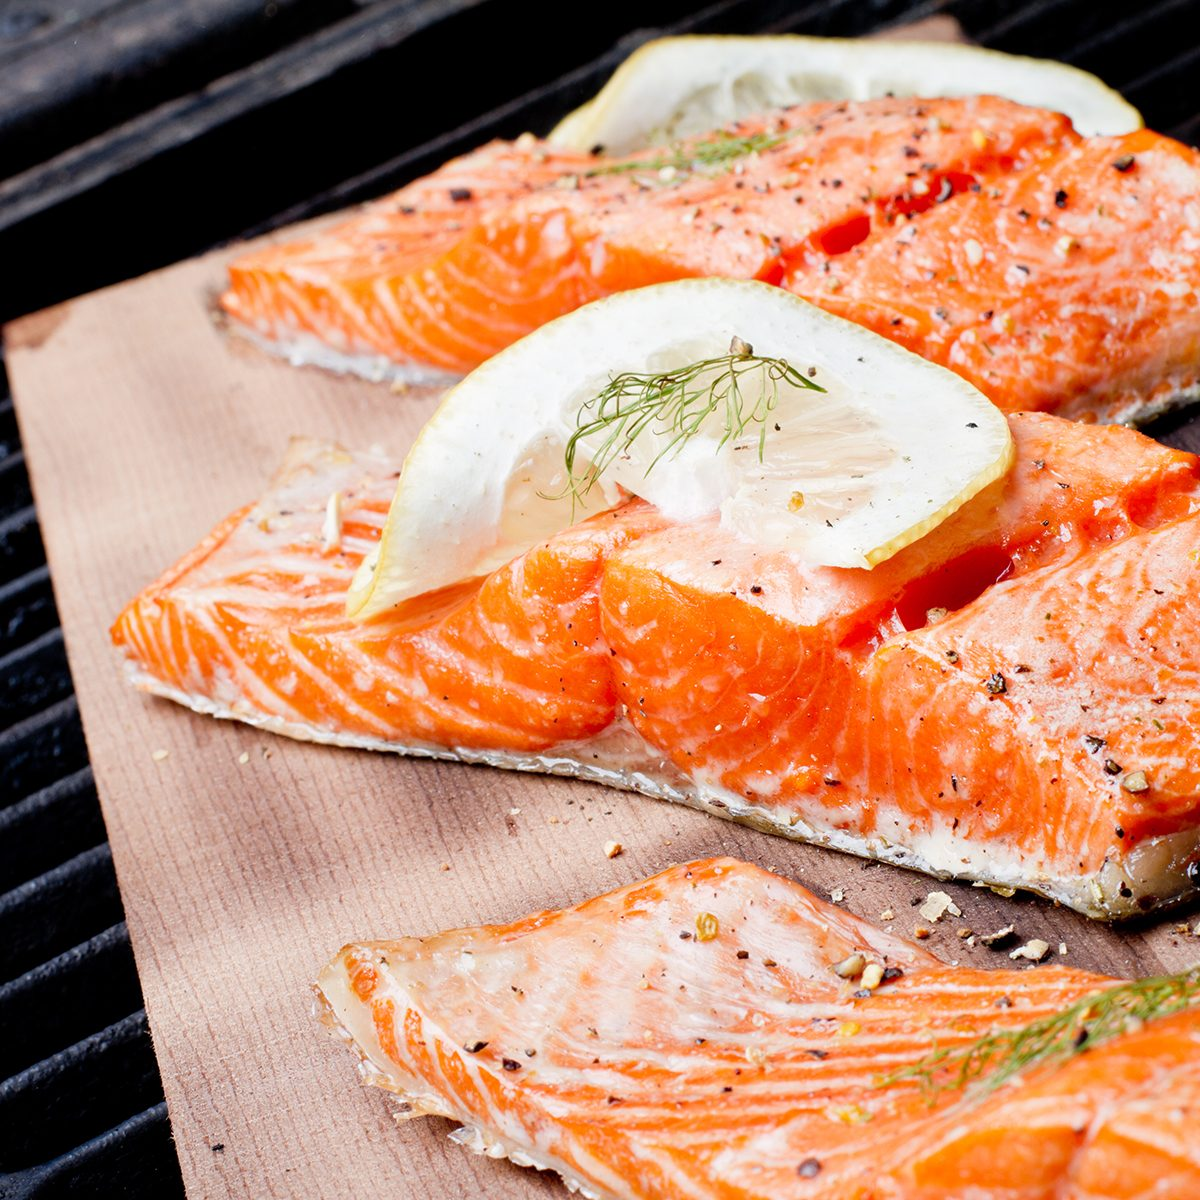 Three wild-caught salmon filets on a cedar plank in a backyard grill. Fist is bright reddish orange and is topped with lemon, dill and cracked pepper